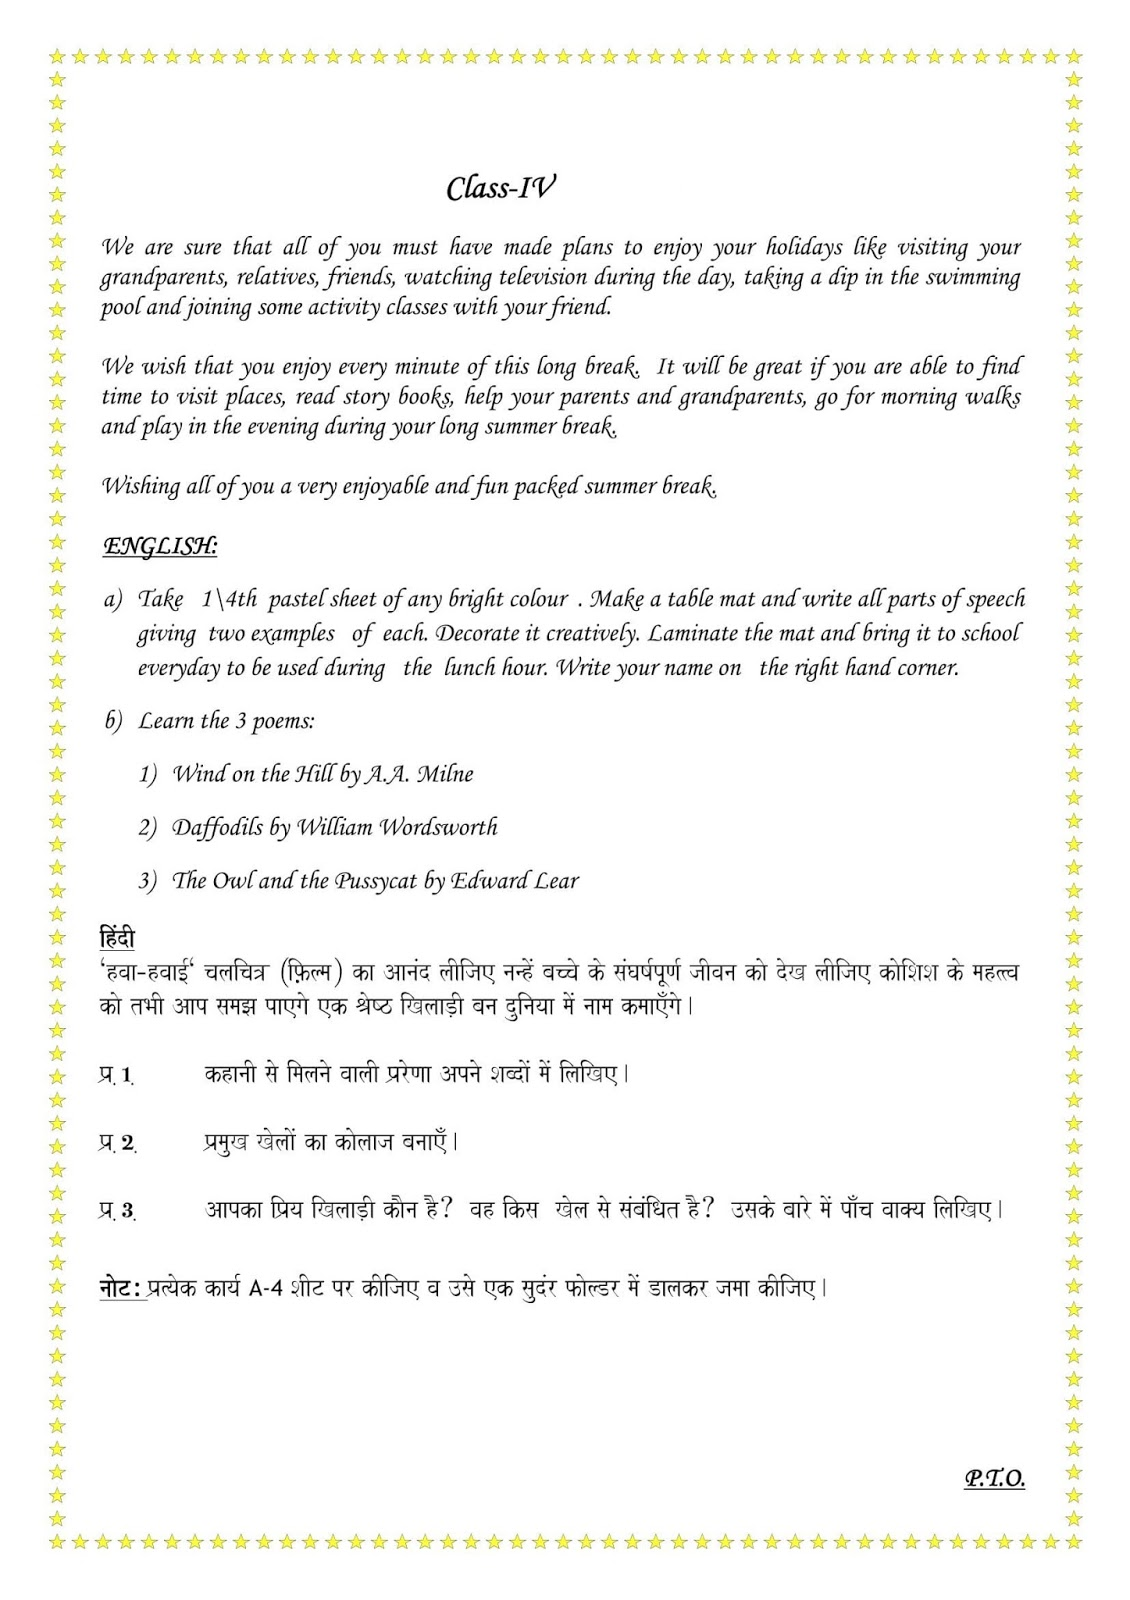 Class 6 Holiday Homework Dps Indirapuram